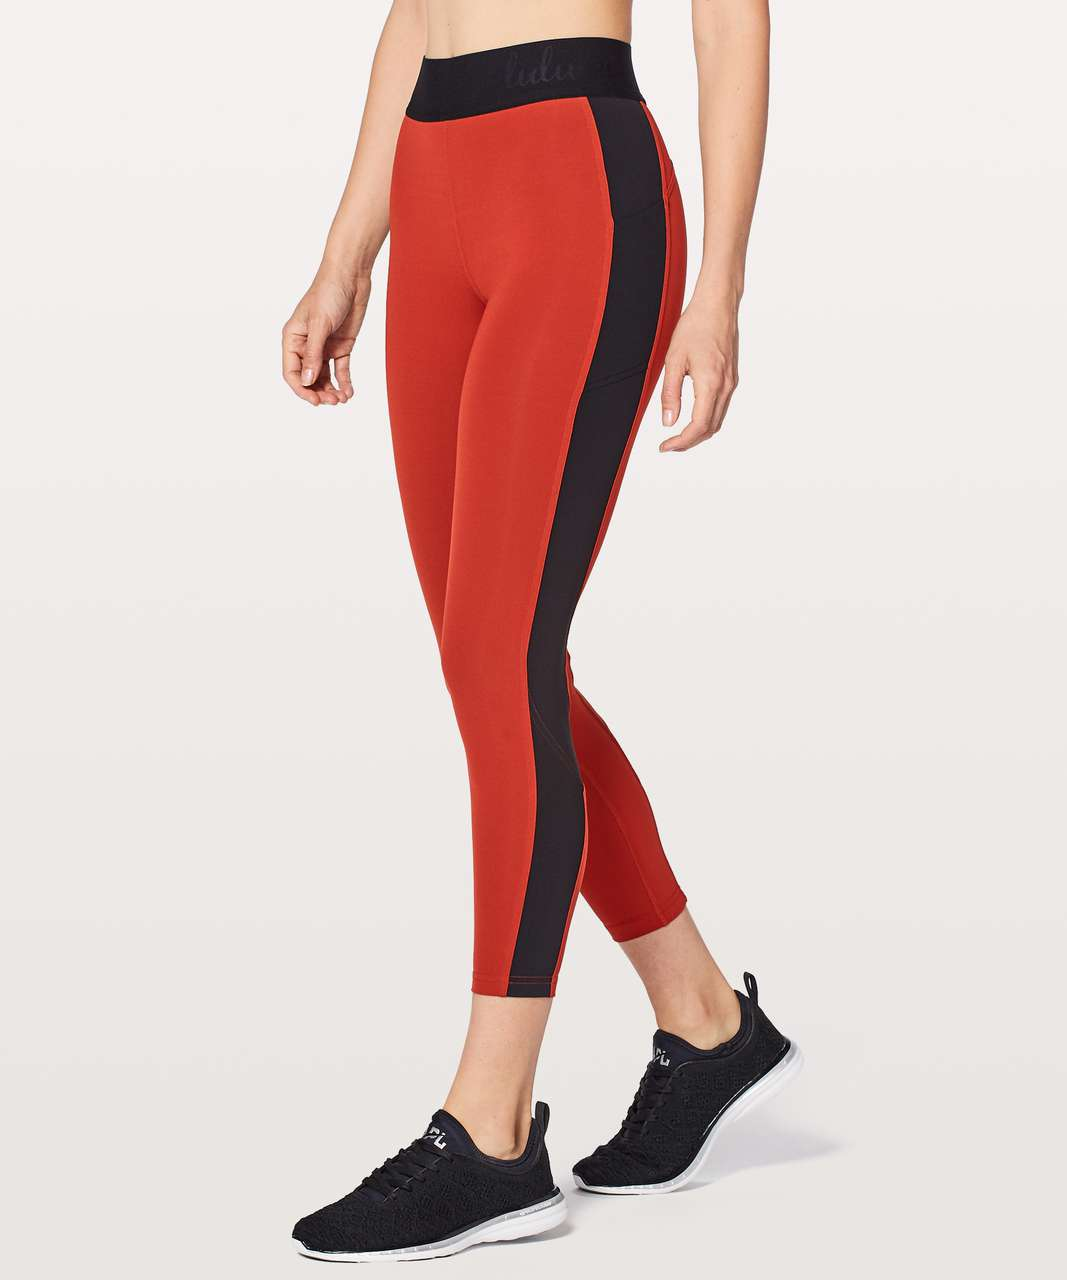 Lululemon Box It Out Tight - Bonfire / Black